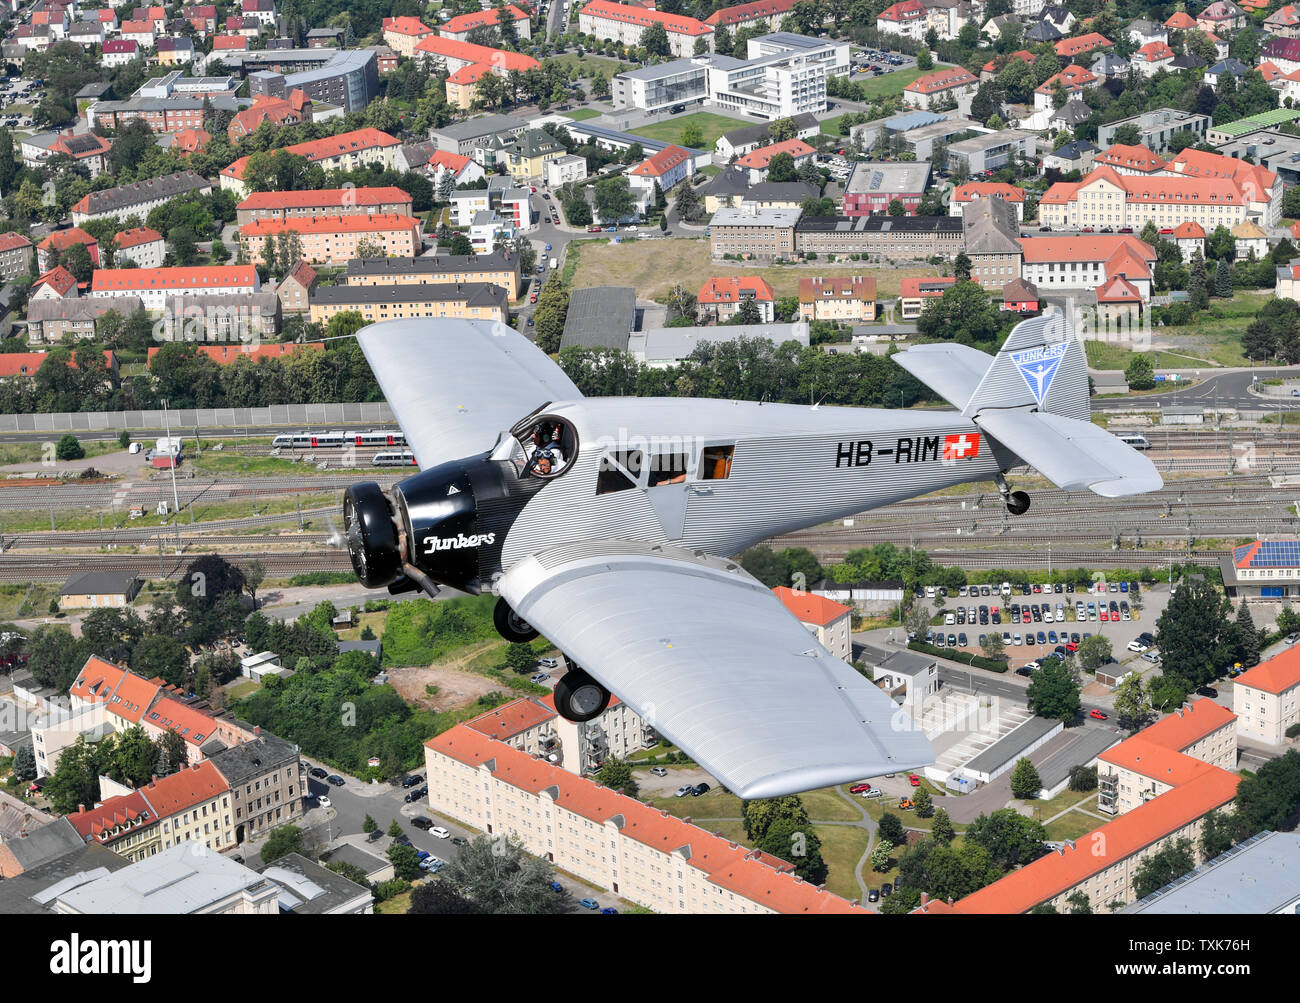 25 June 2019, Saxony-Anhalt, Dessau-Roßlau: The pilots Dieter Morszeck and Kurt Waldmeier steer the Junkers F 13 via Dessau. Exactly 100 years ago, an aircraft of this type took off for the first time in Dessau. The aircraft, designed by aircraft pioneer Hugo Junkers, was the world's first all-metal commercial aircraft and is regarded as a pioneer in civil aviation. Since 2016, the machine has again been manufactured in small series in Switzerland. Photo: Hendrik Schmidt/dpa-Zentralbild/dpa - Stock Image